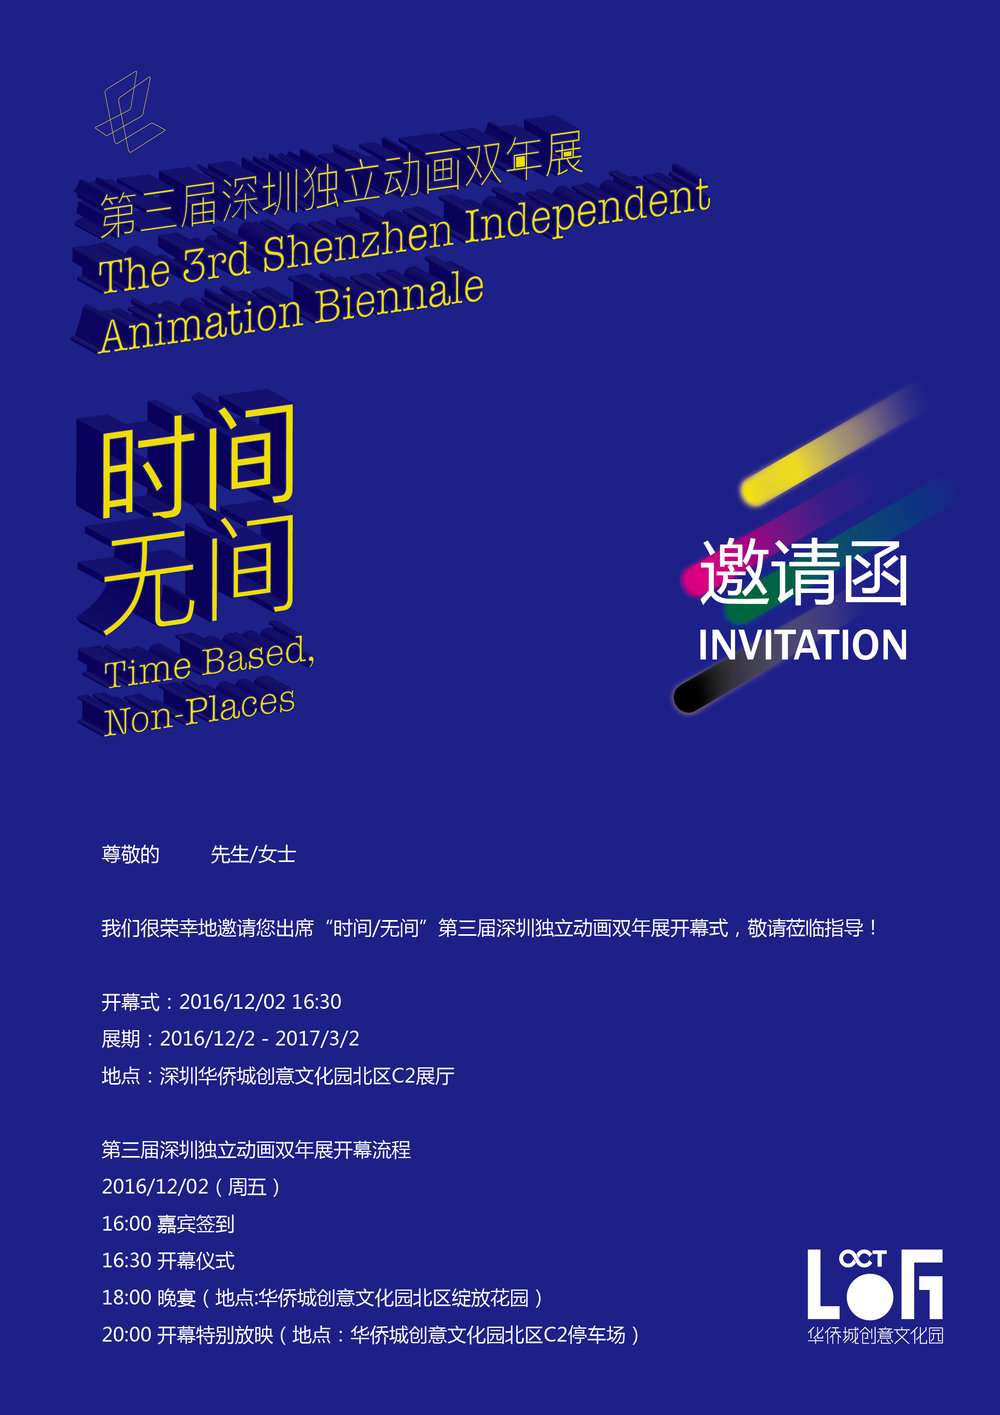 第三届深圳独立动画双年展 Third Shenzhen Independent Animation Biennial  -